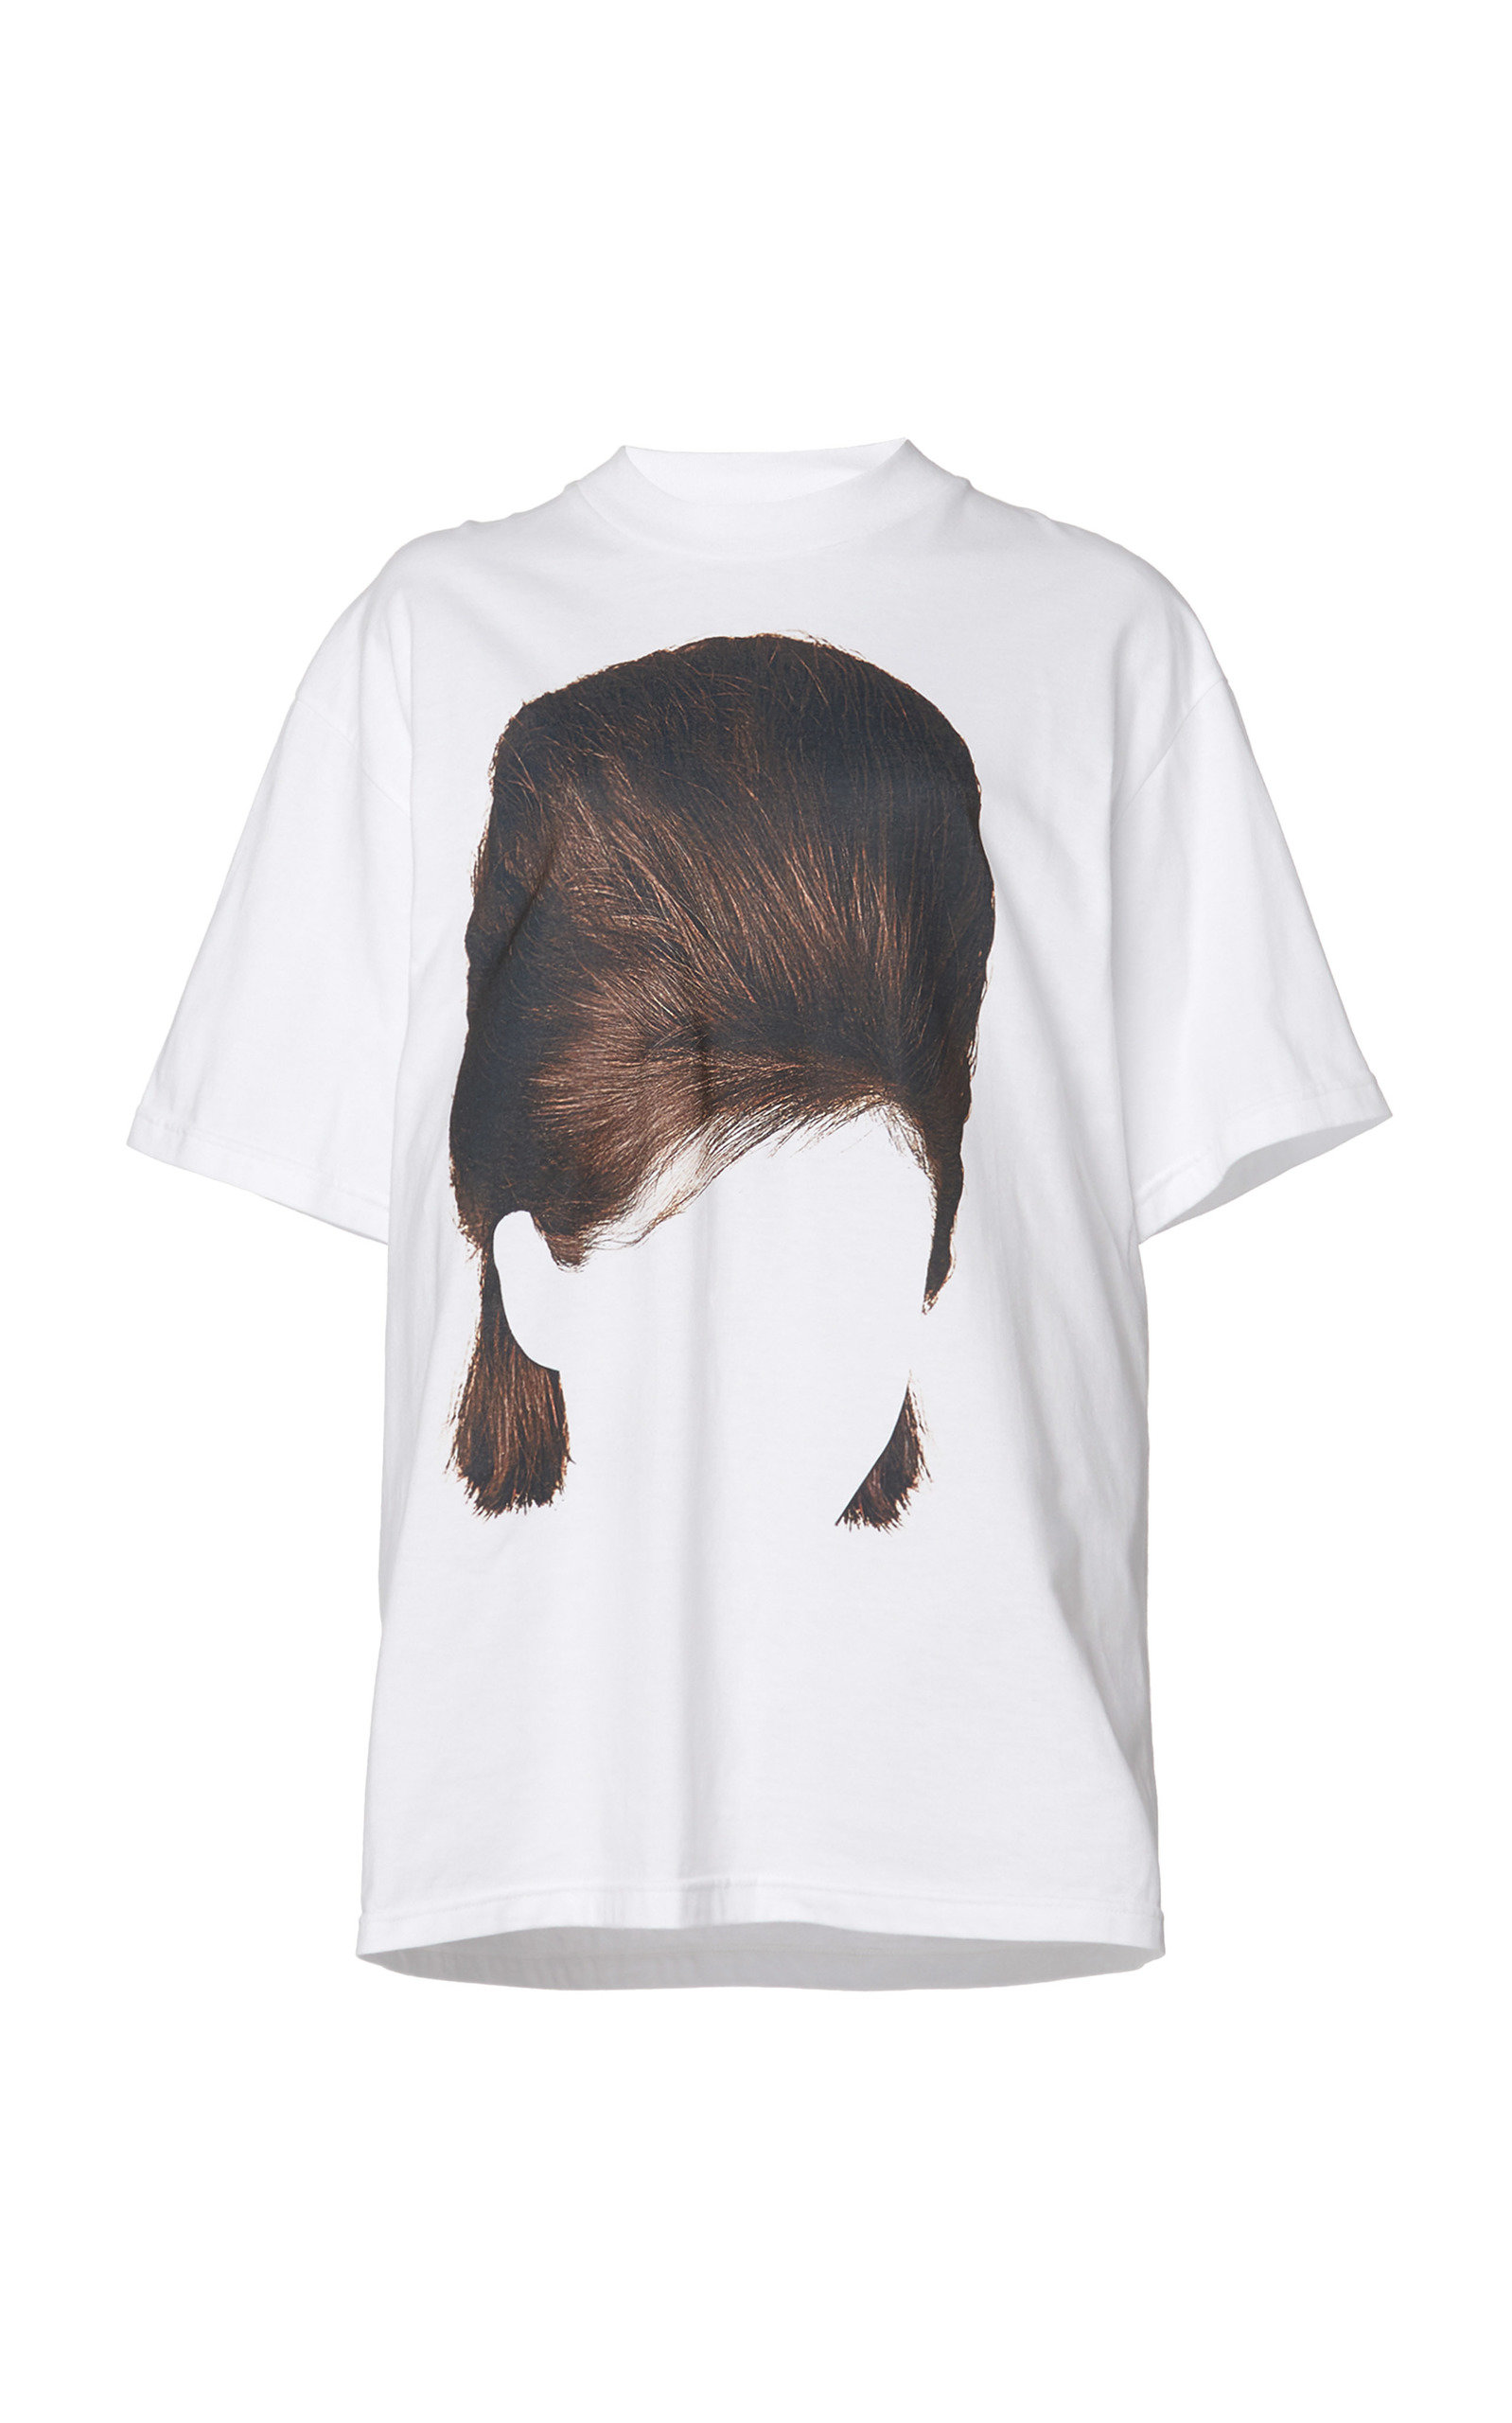 Pushbutton PRINTED HAIR COTTON T-SHIRT